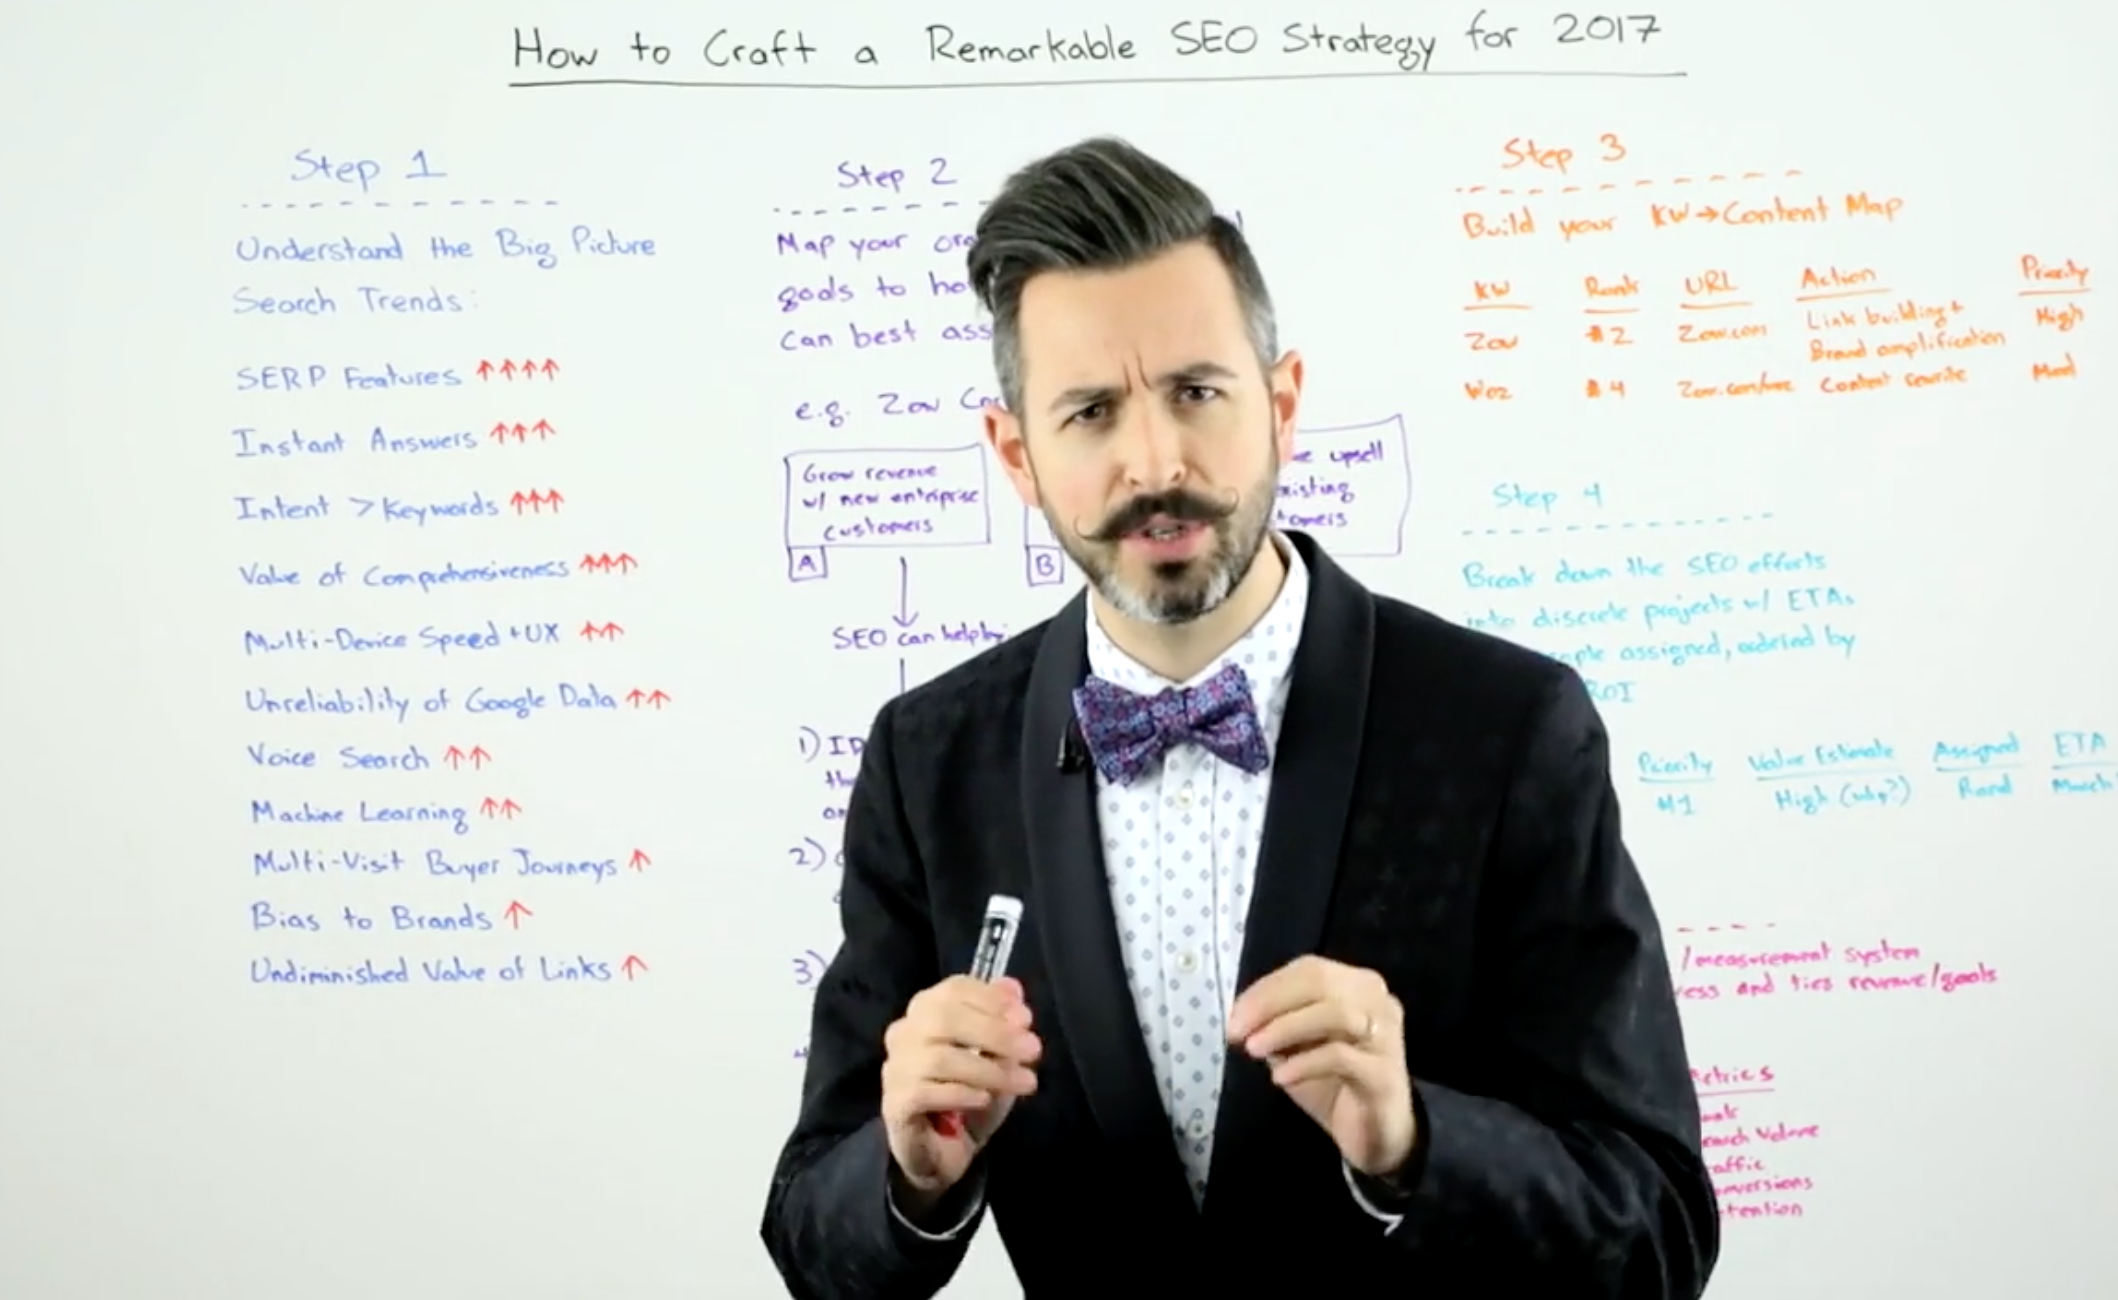 an image of Rand Fishkin, host of Whiteboard Fridays (focused on SEO)